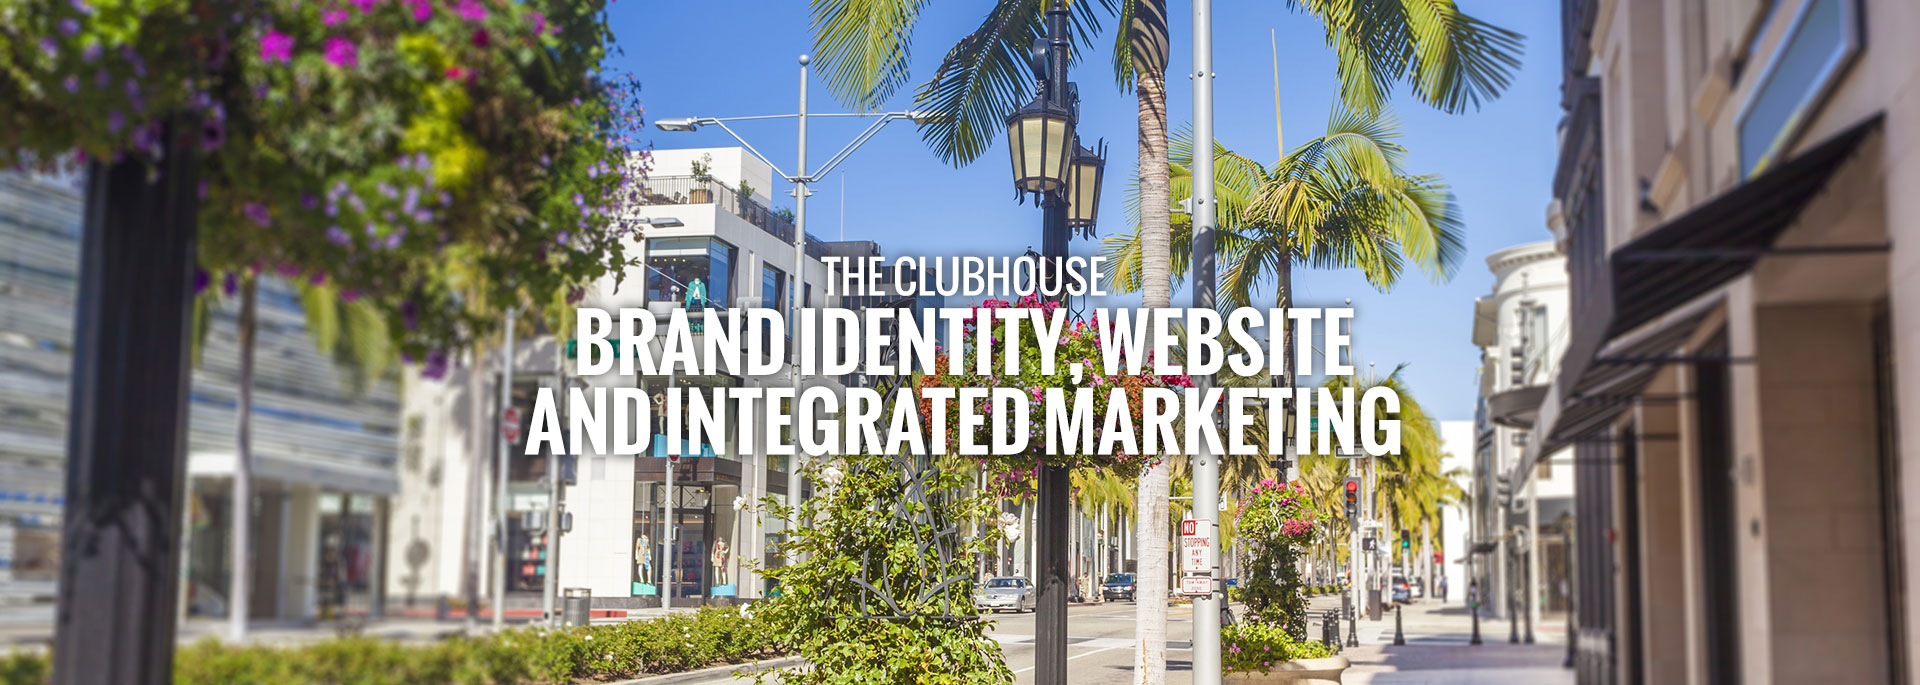 Clubhouse Alderley brand identity and website, marketing